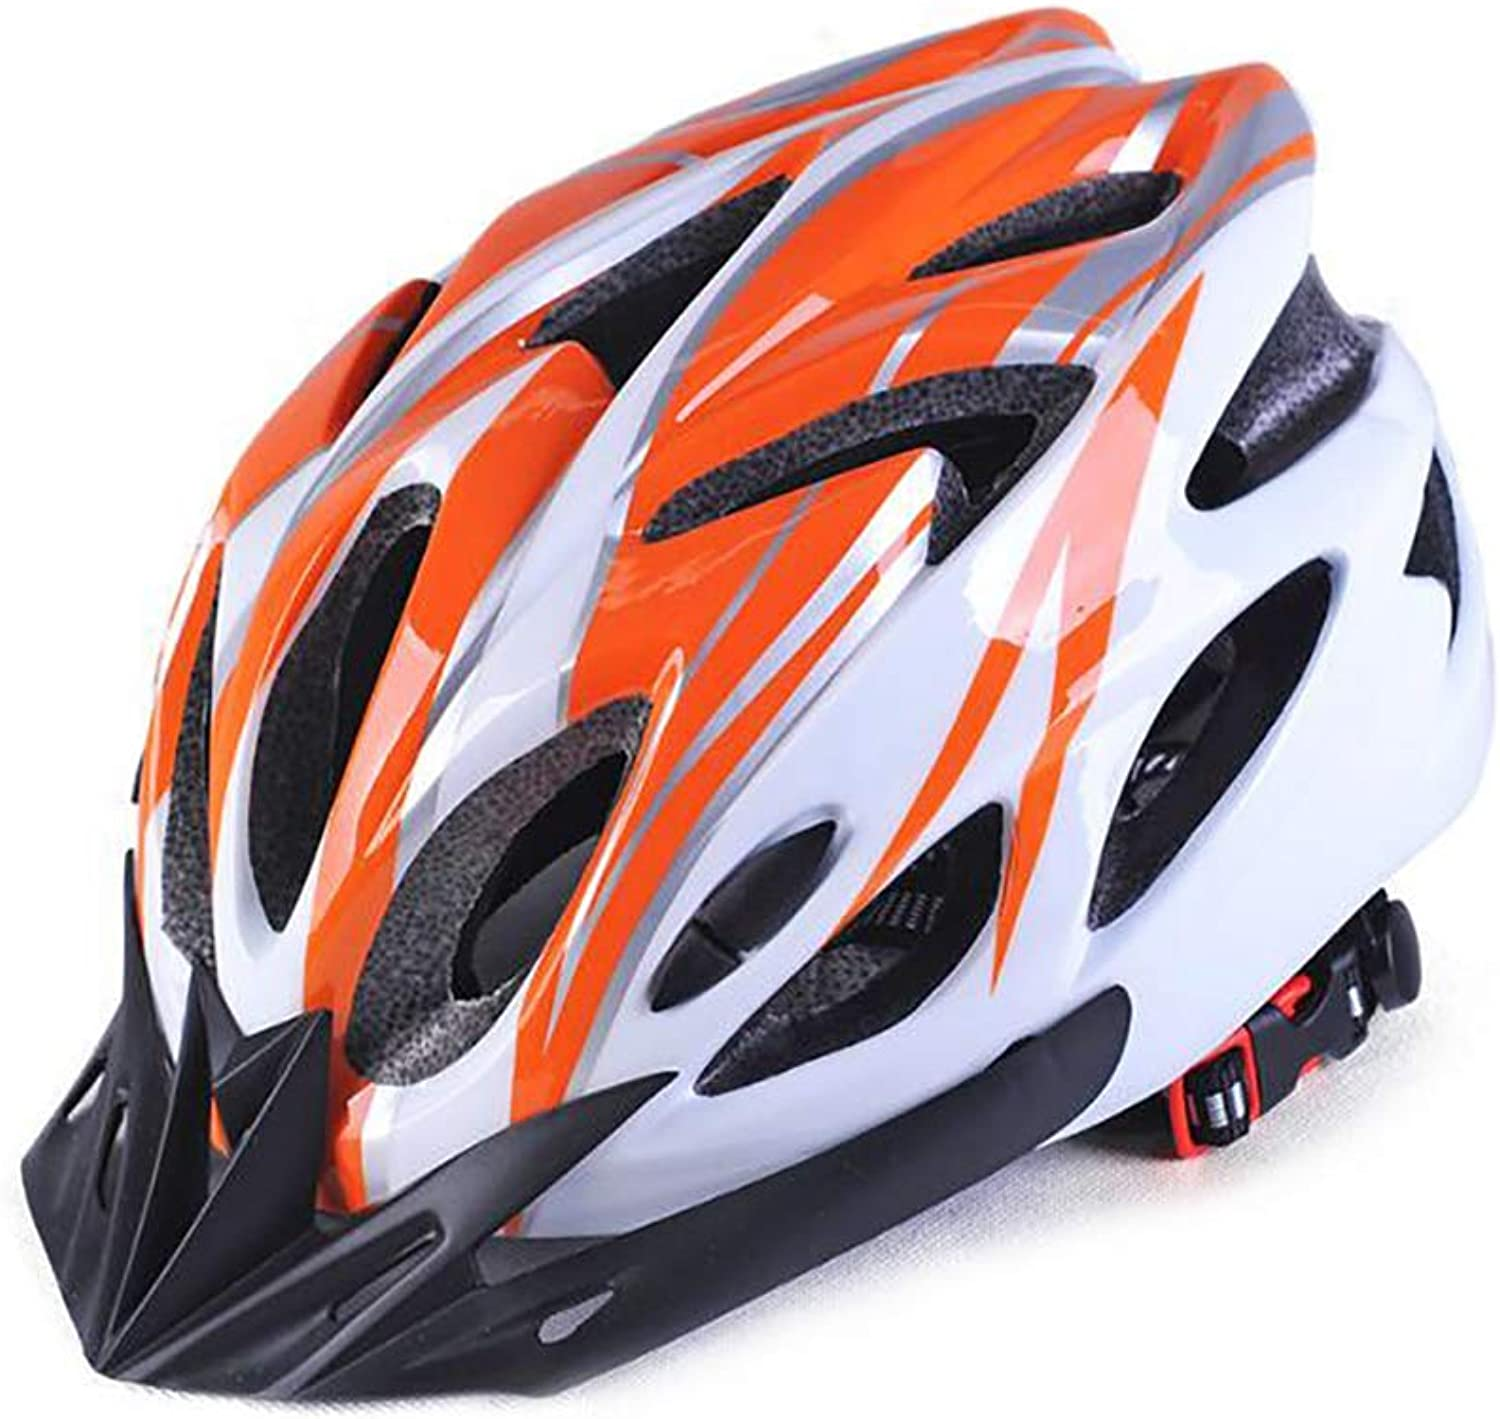 OUDTER orange and White Adult Cycling Bike Helmet Adjustable Size Comfortable, Lightweight, Breathable Road Safety Predection